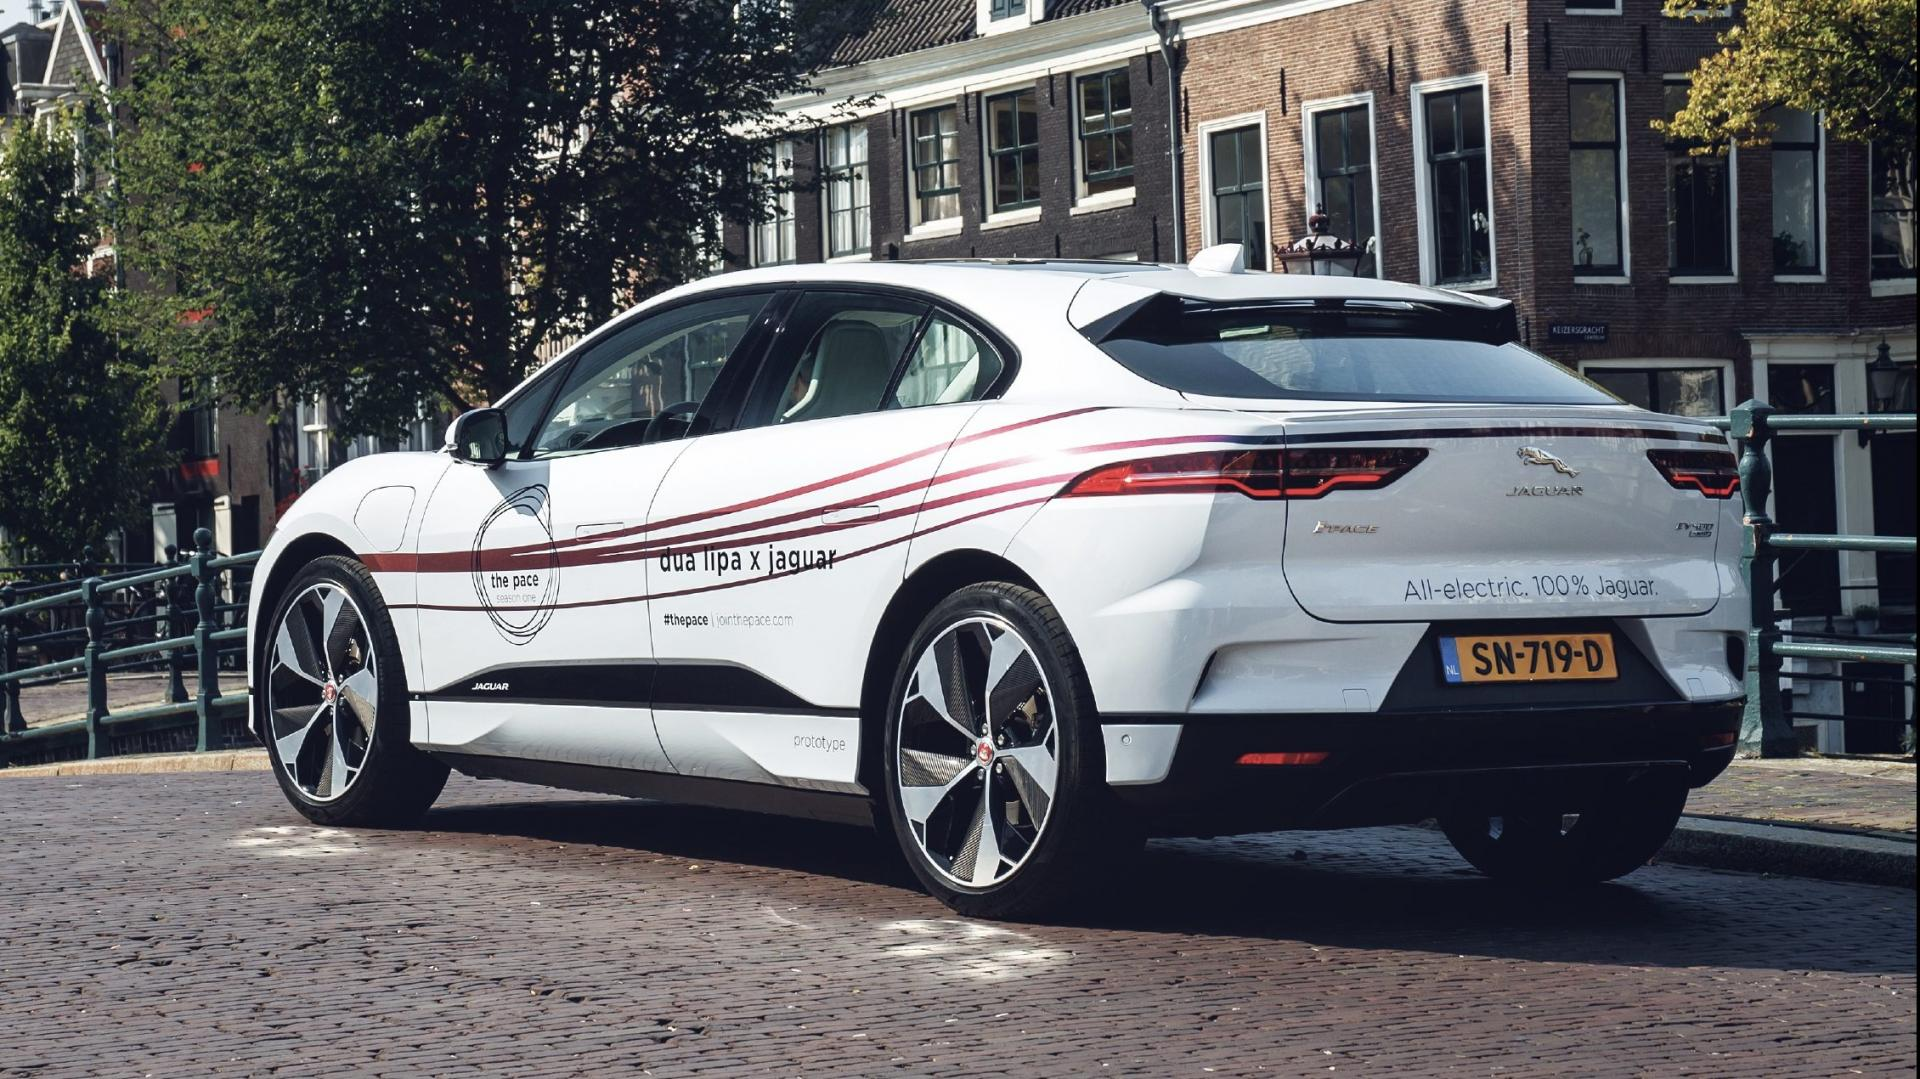 Jaguar I-PACE Amsterdam August 2018